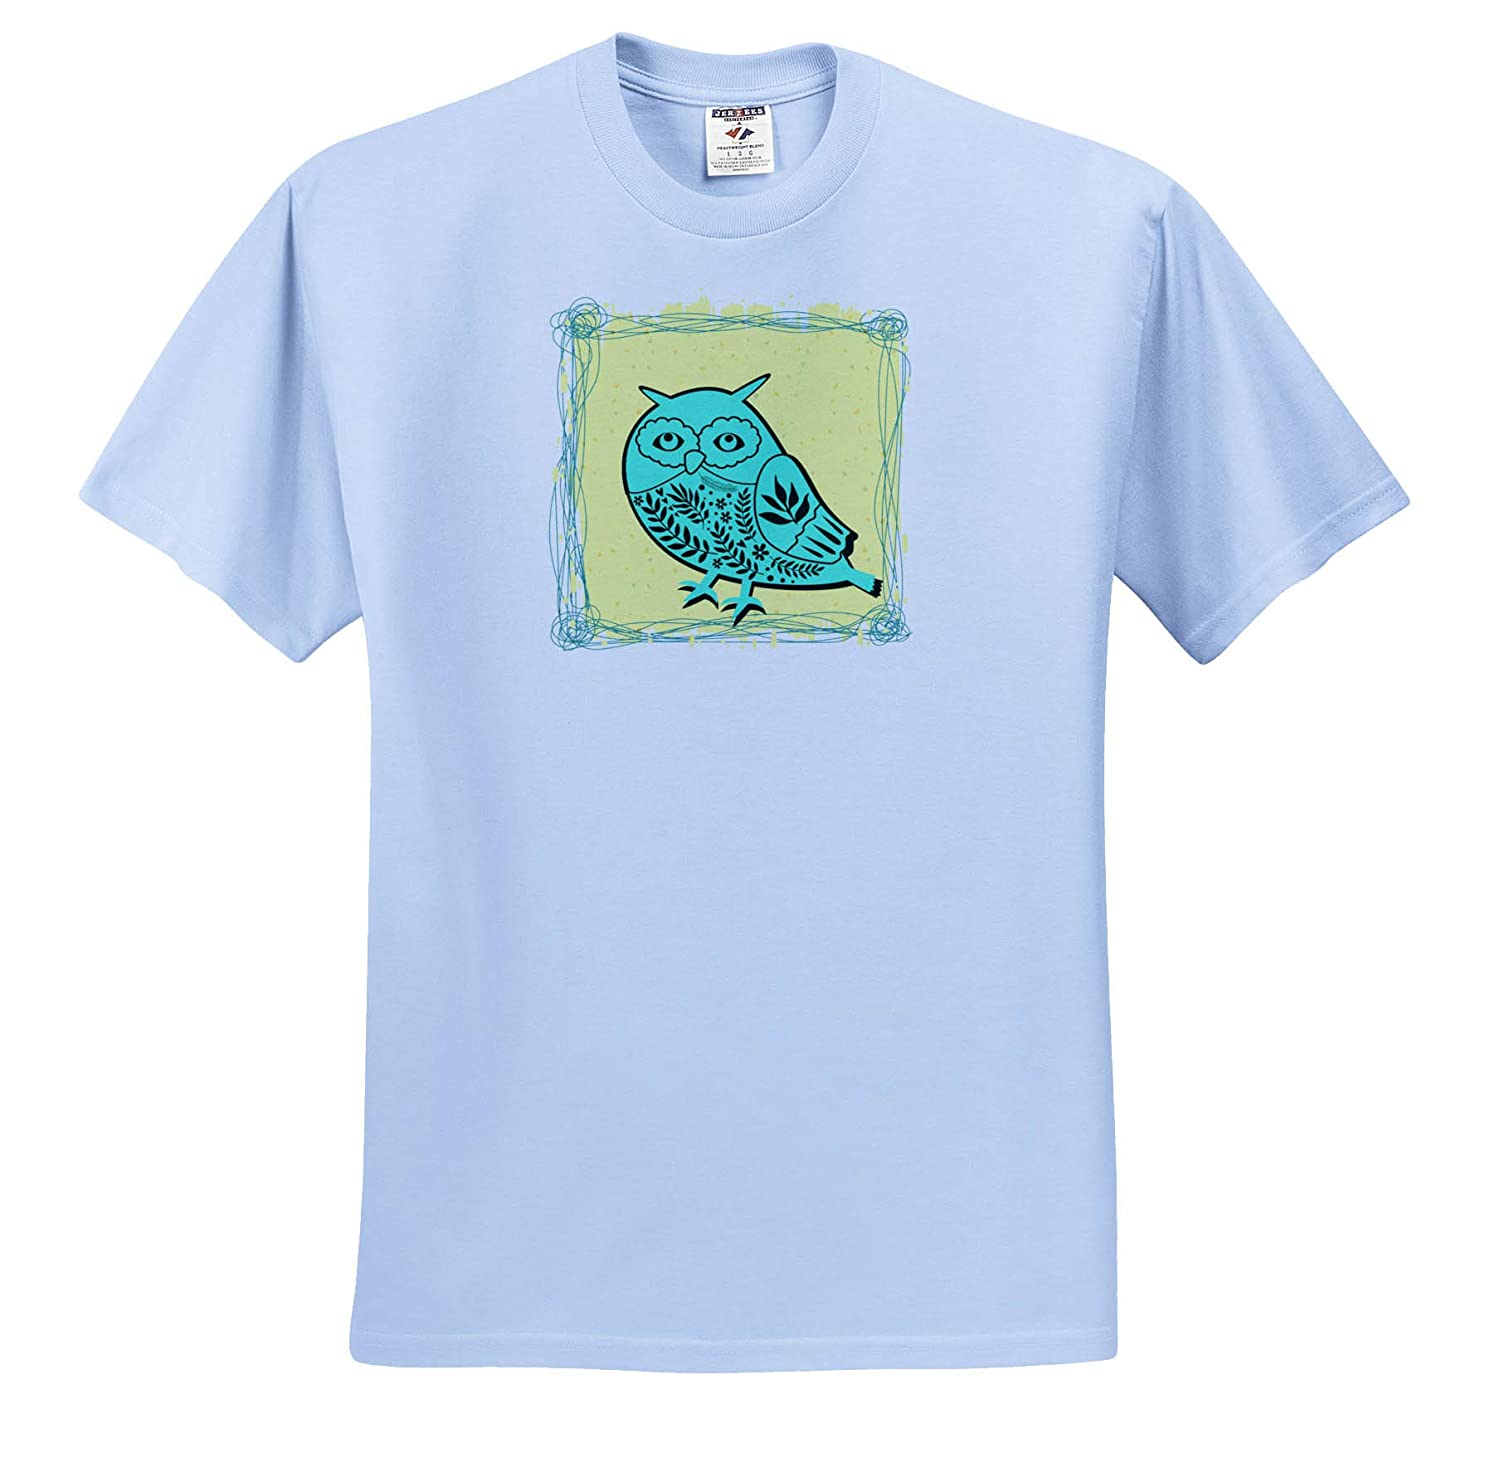 3dRose Carrie Quote Image Adult T-Shirt XL ts/_318613 Image of Owl